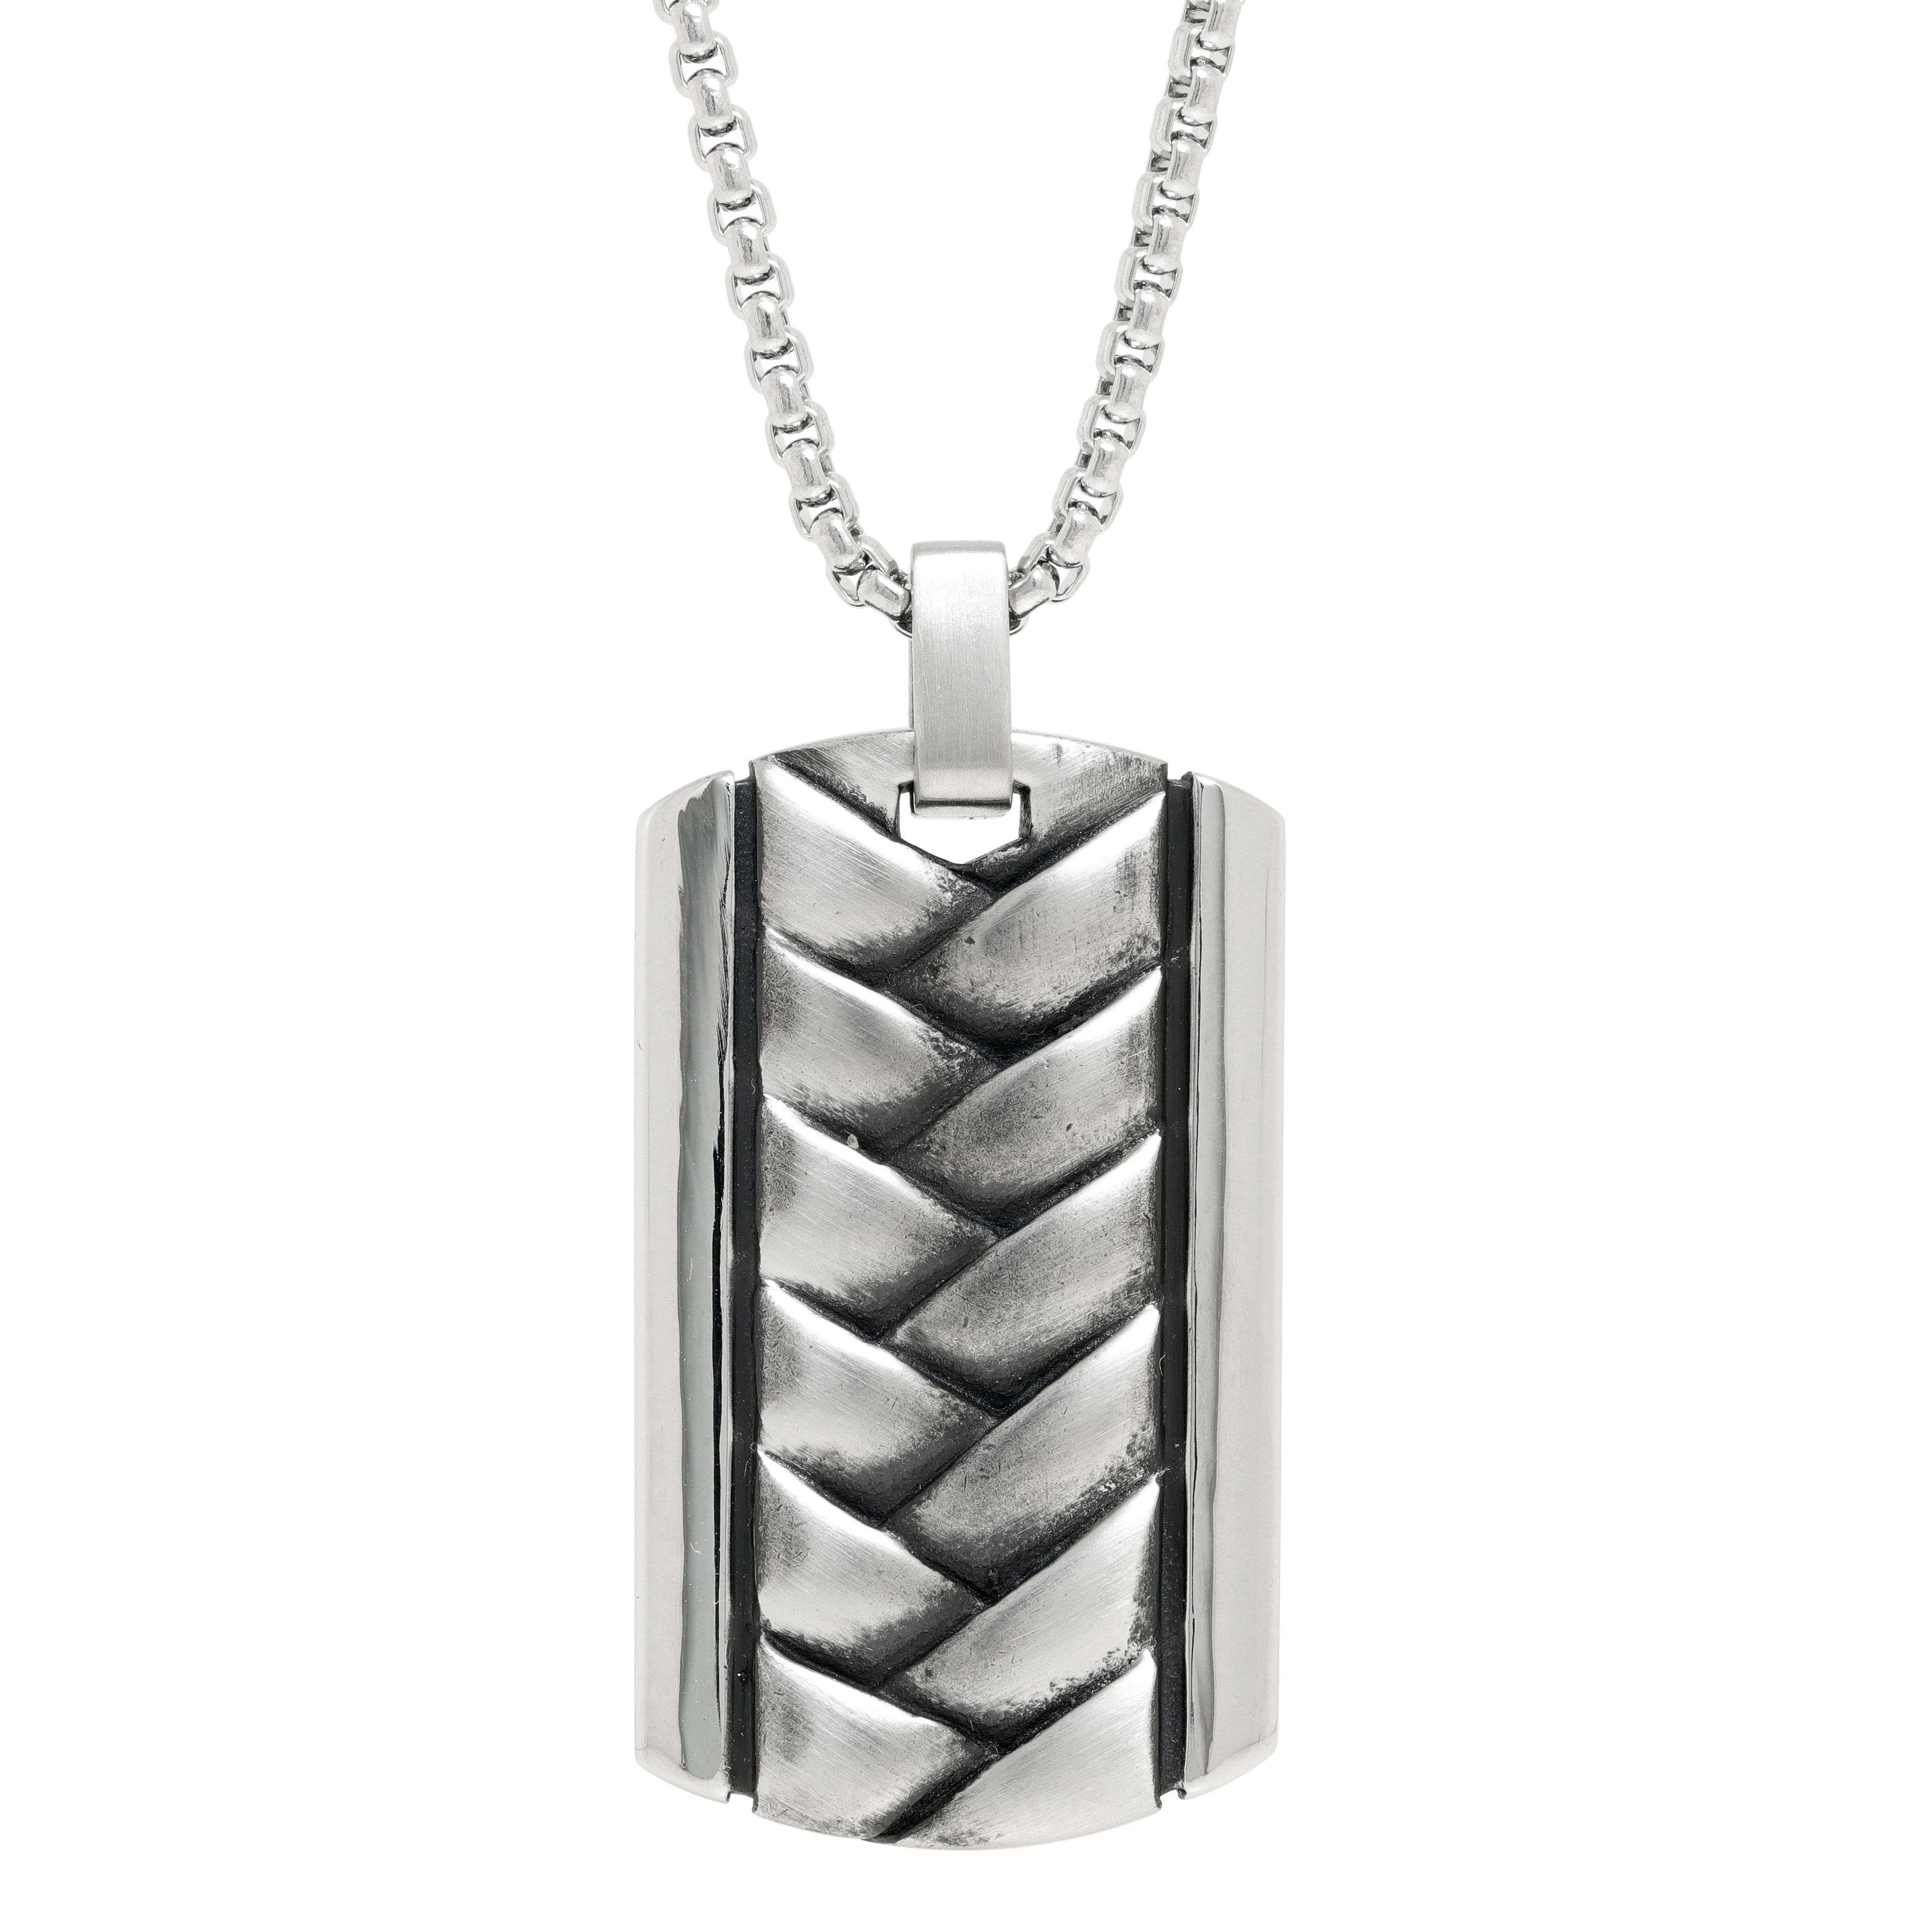 Men's Stainless Steel Textured Layers Pendant